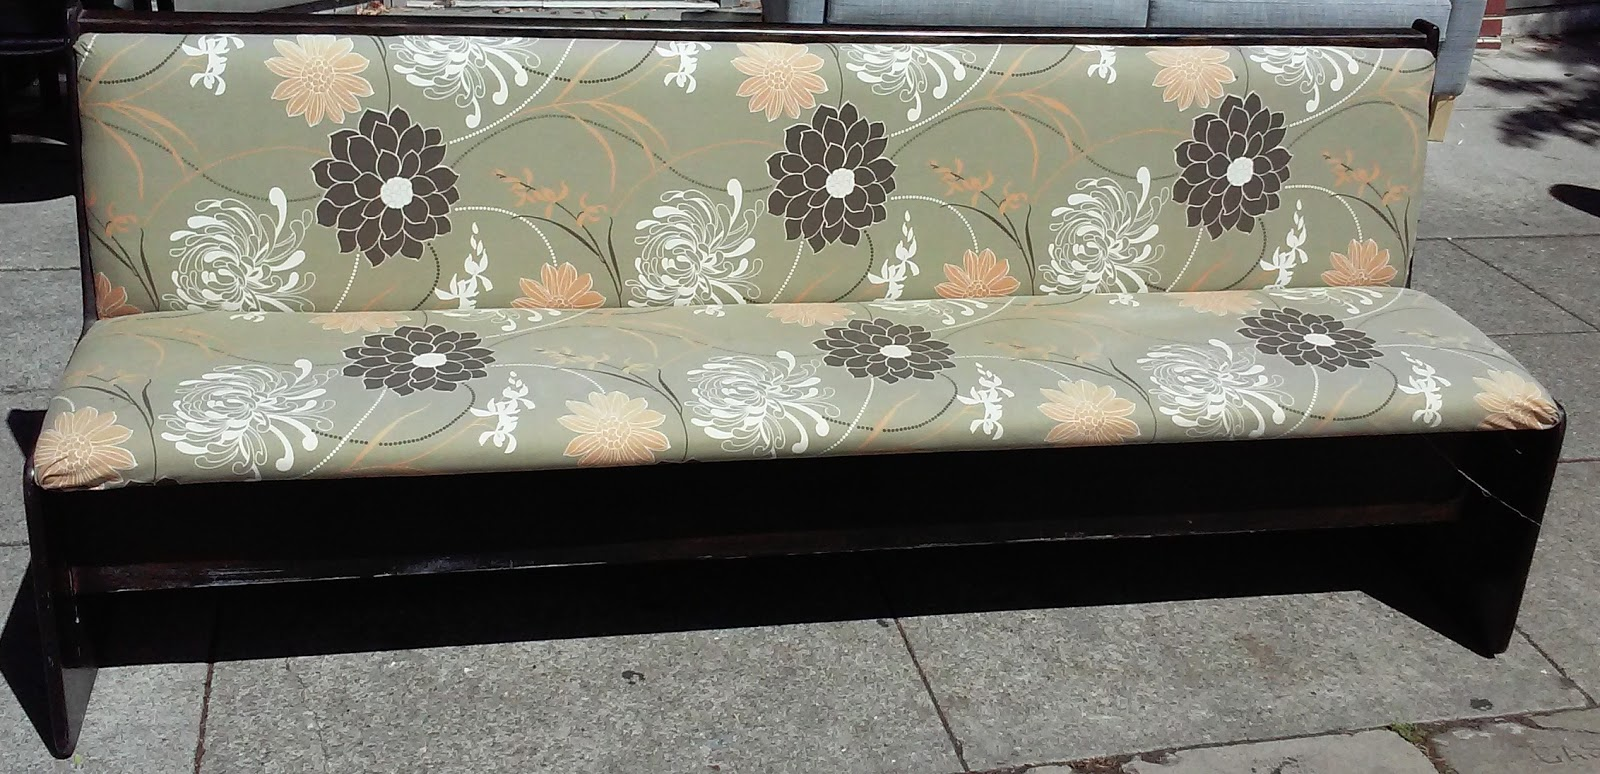 Groovy Uhuru Furniture Collectibles Sold 1785 80 Church Pew Caraccident5 Cool Chair Designs And Ideas Caraccident5Info